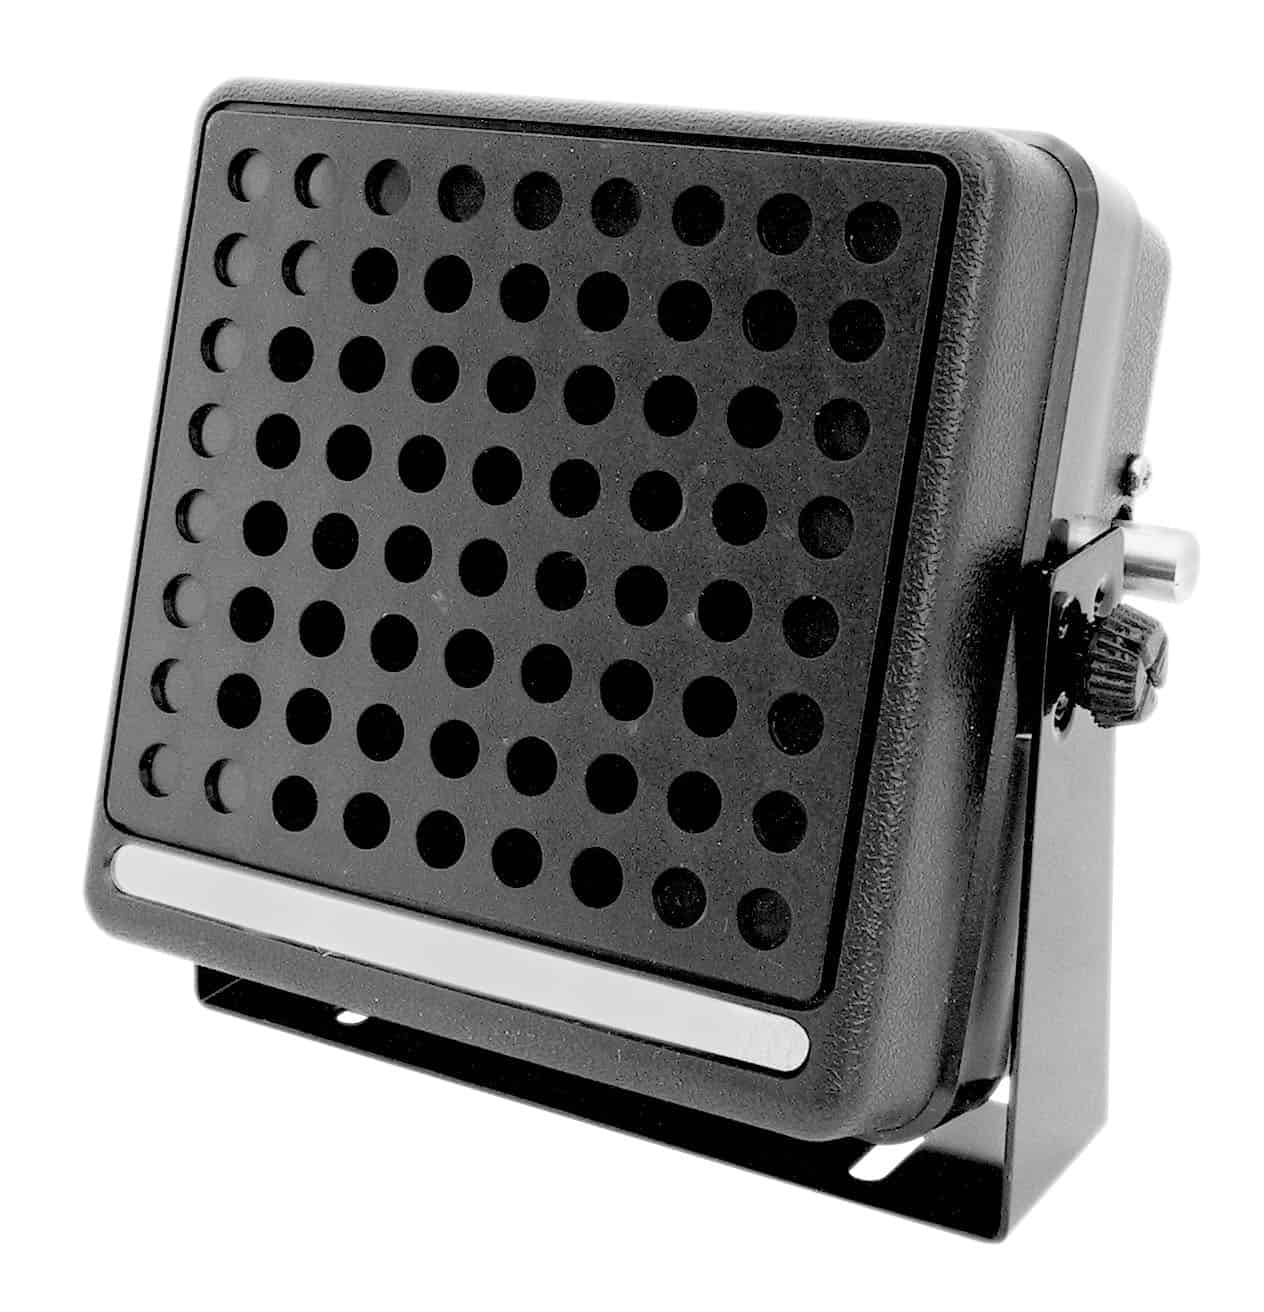 """AUS6 - 4-1/4"""" External Speaker With Noise Canceling Filter"""